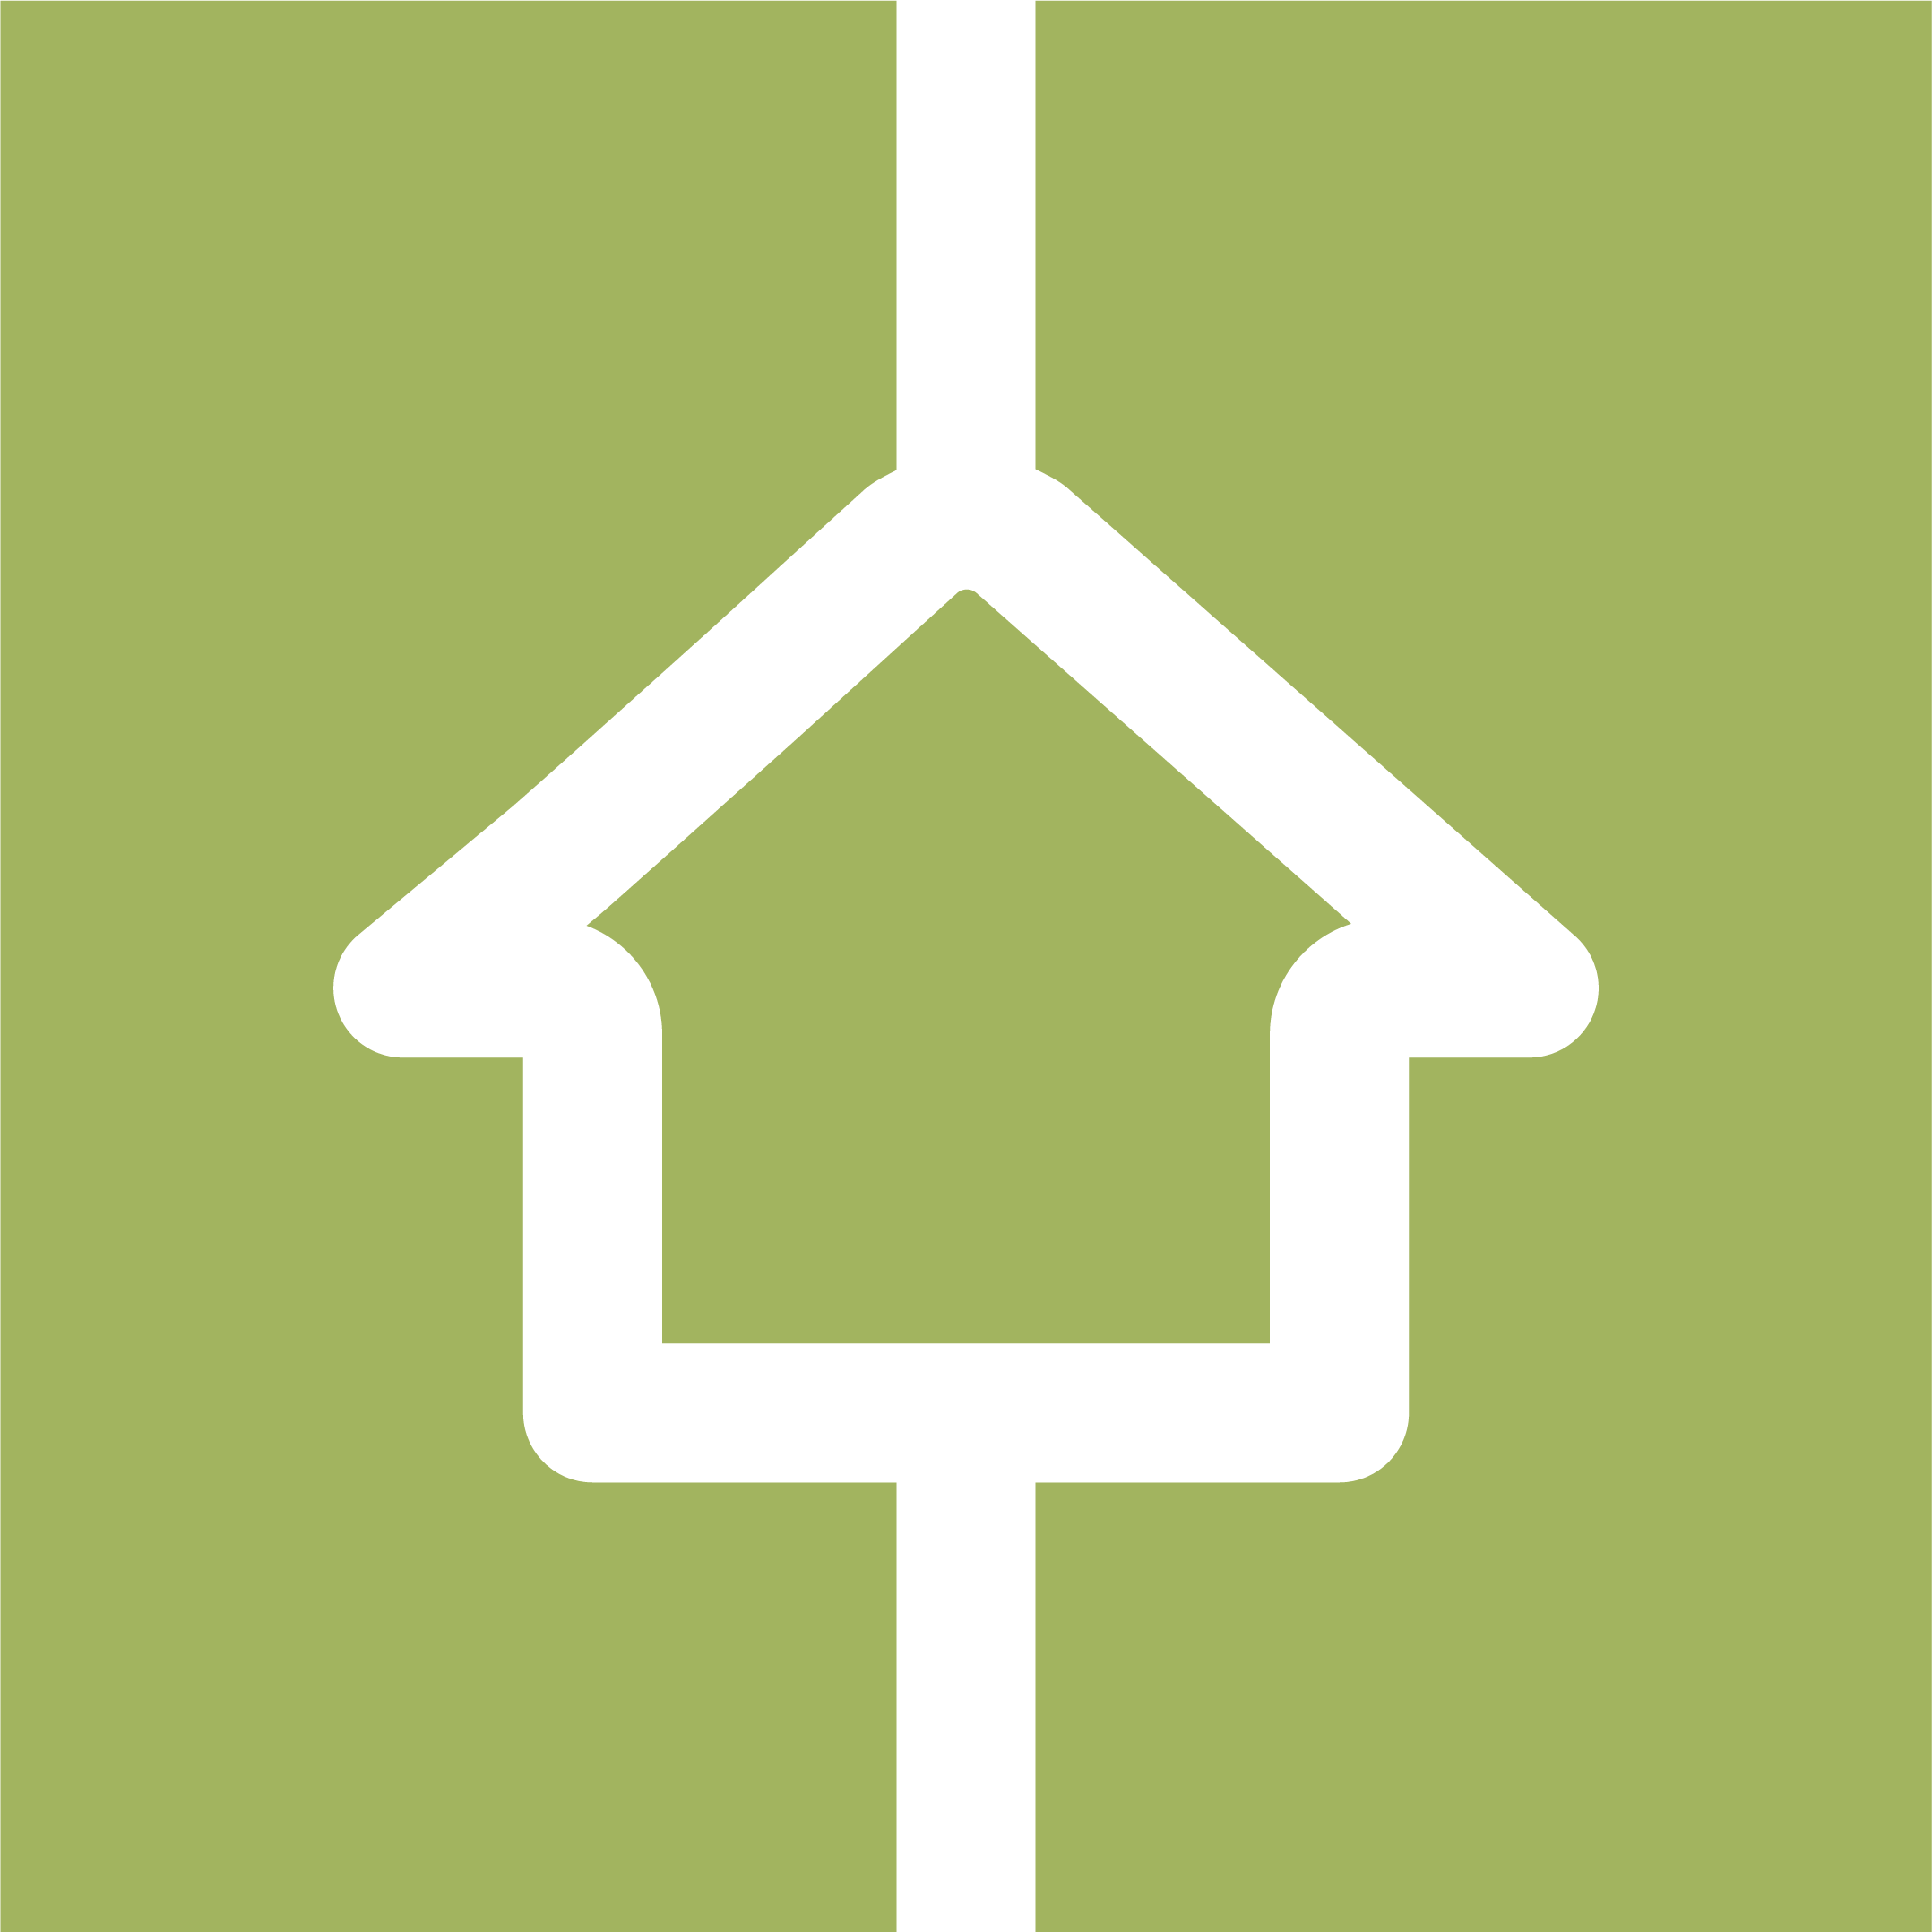 SS-Icon-House_Green.png